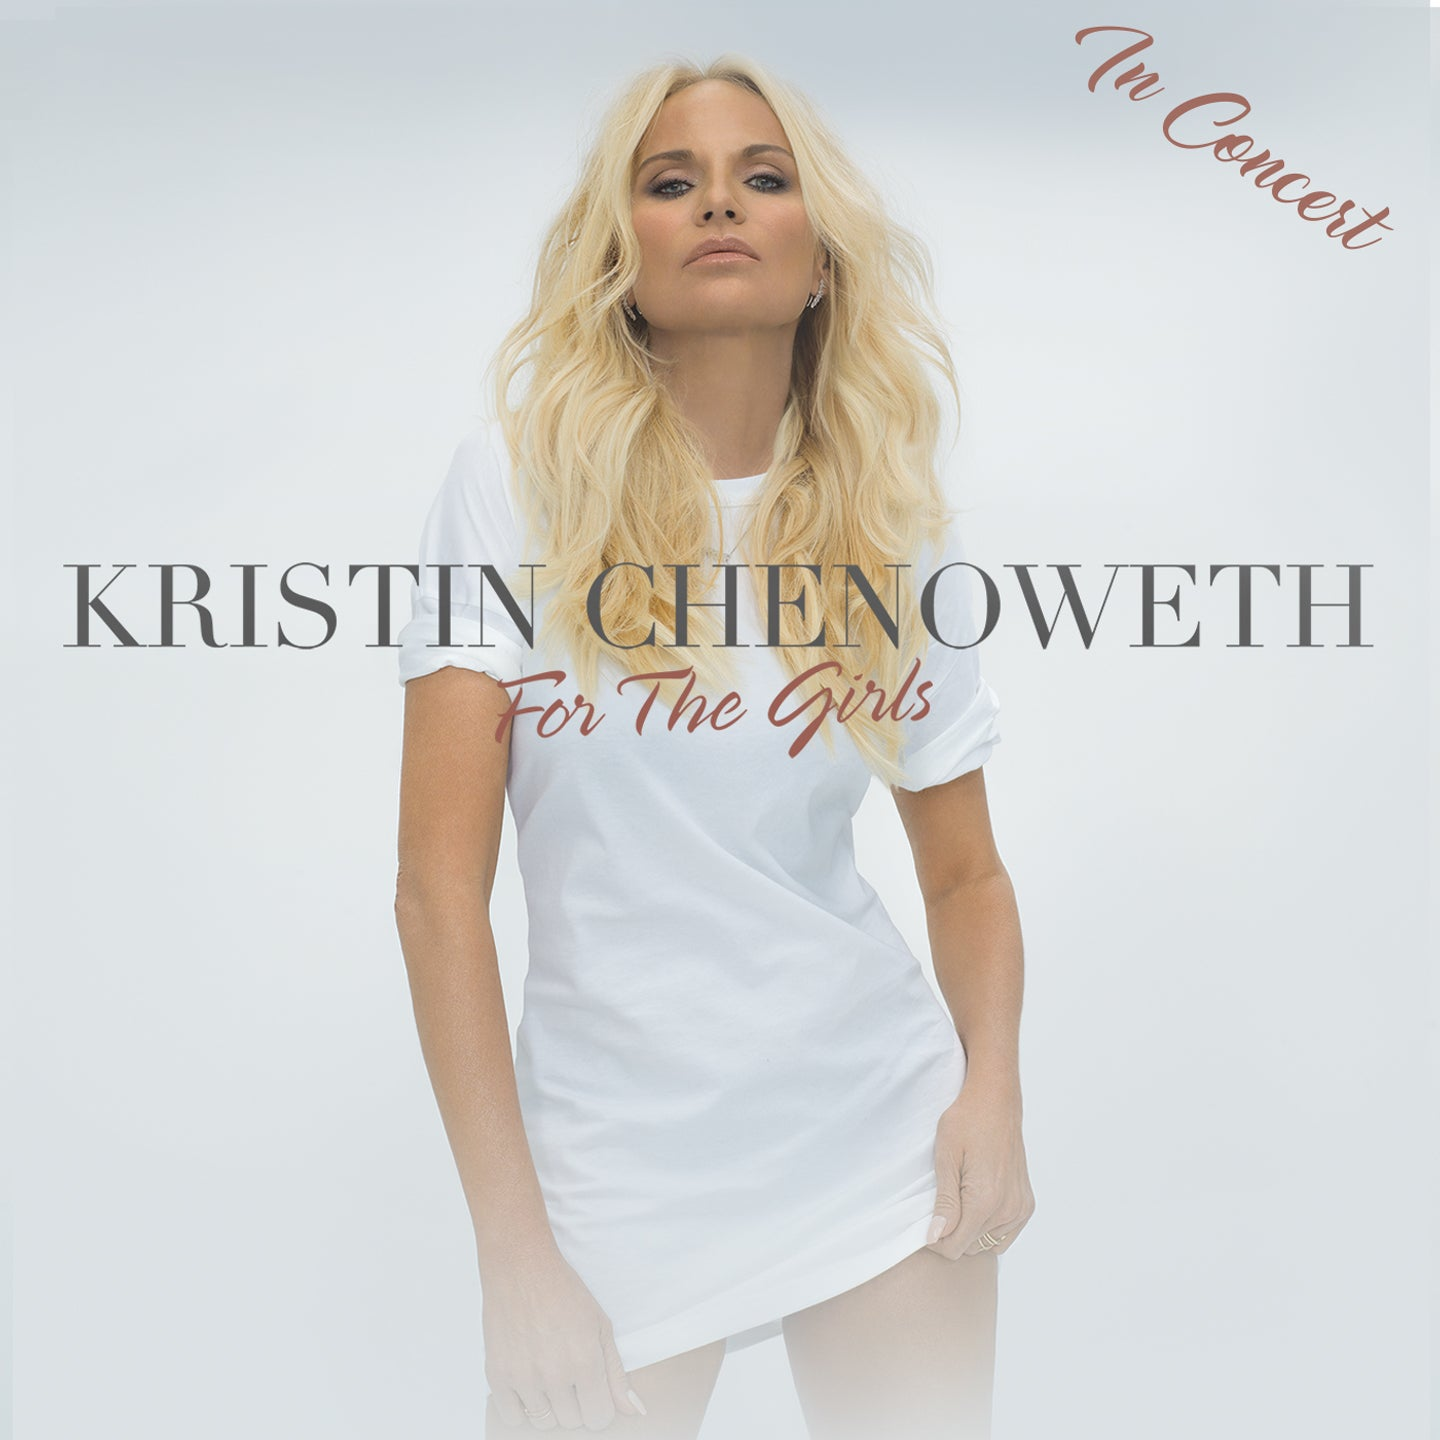 Kristin Chenoweth In Concert - For The Girls